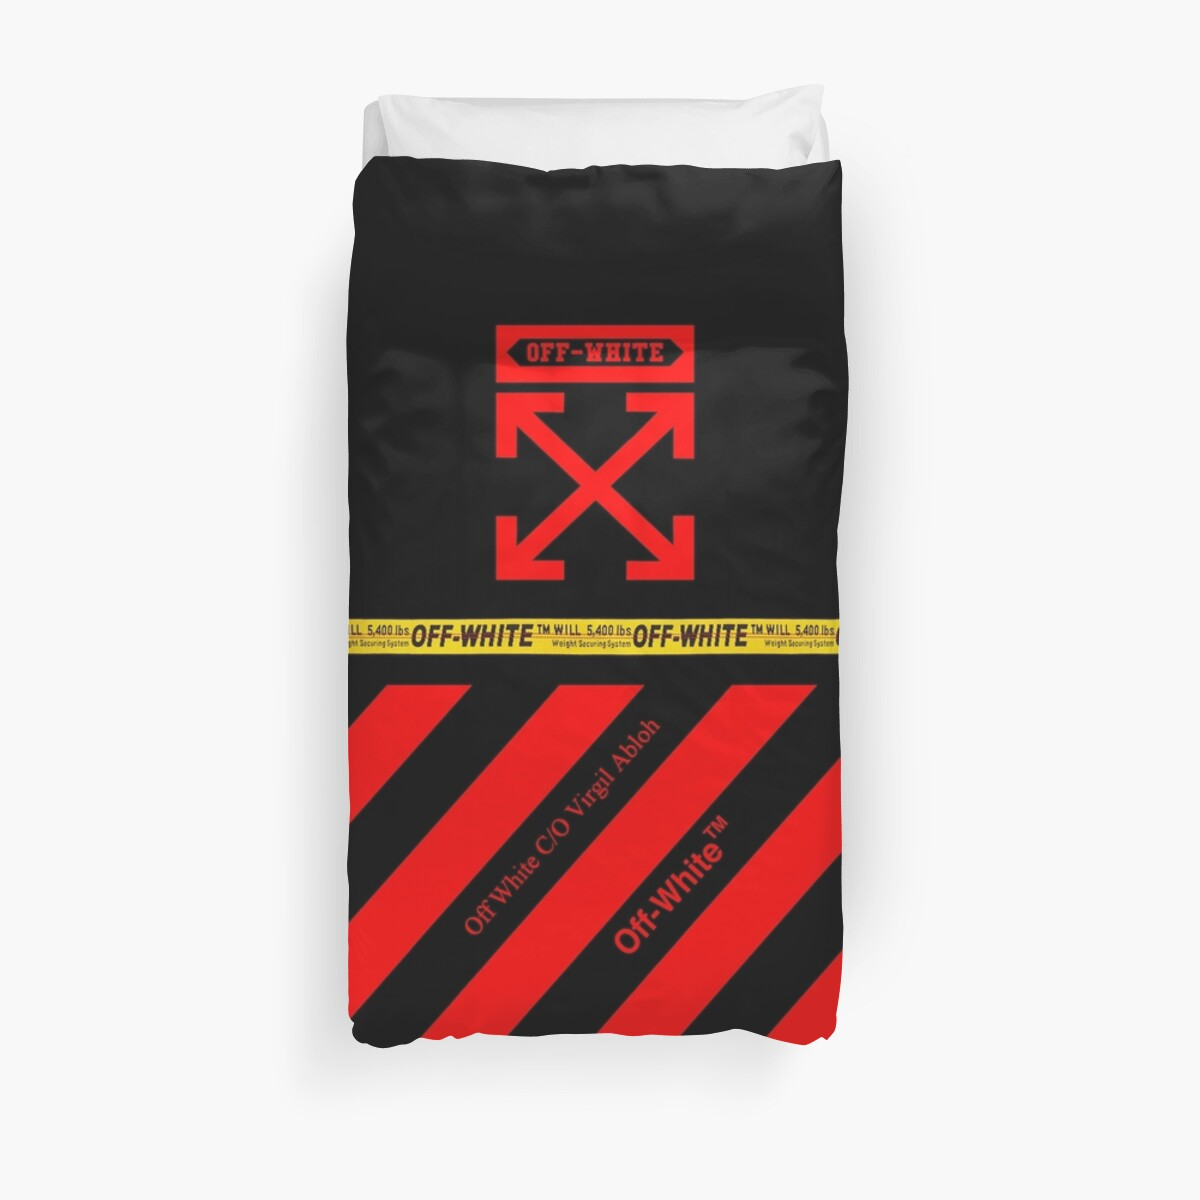 Off White Cover Full Black and Red Stripes by DavidMartino